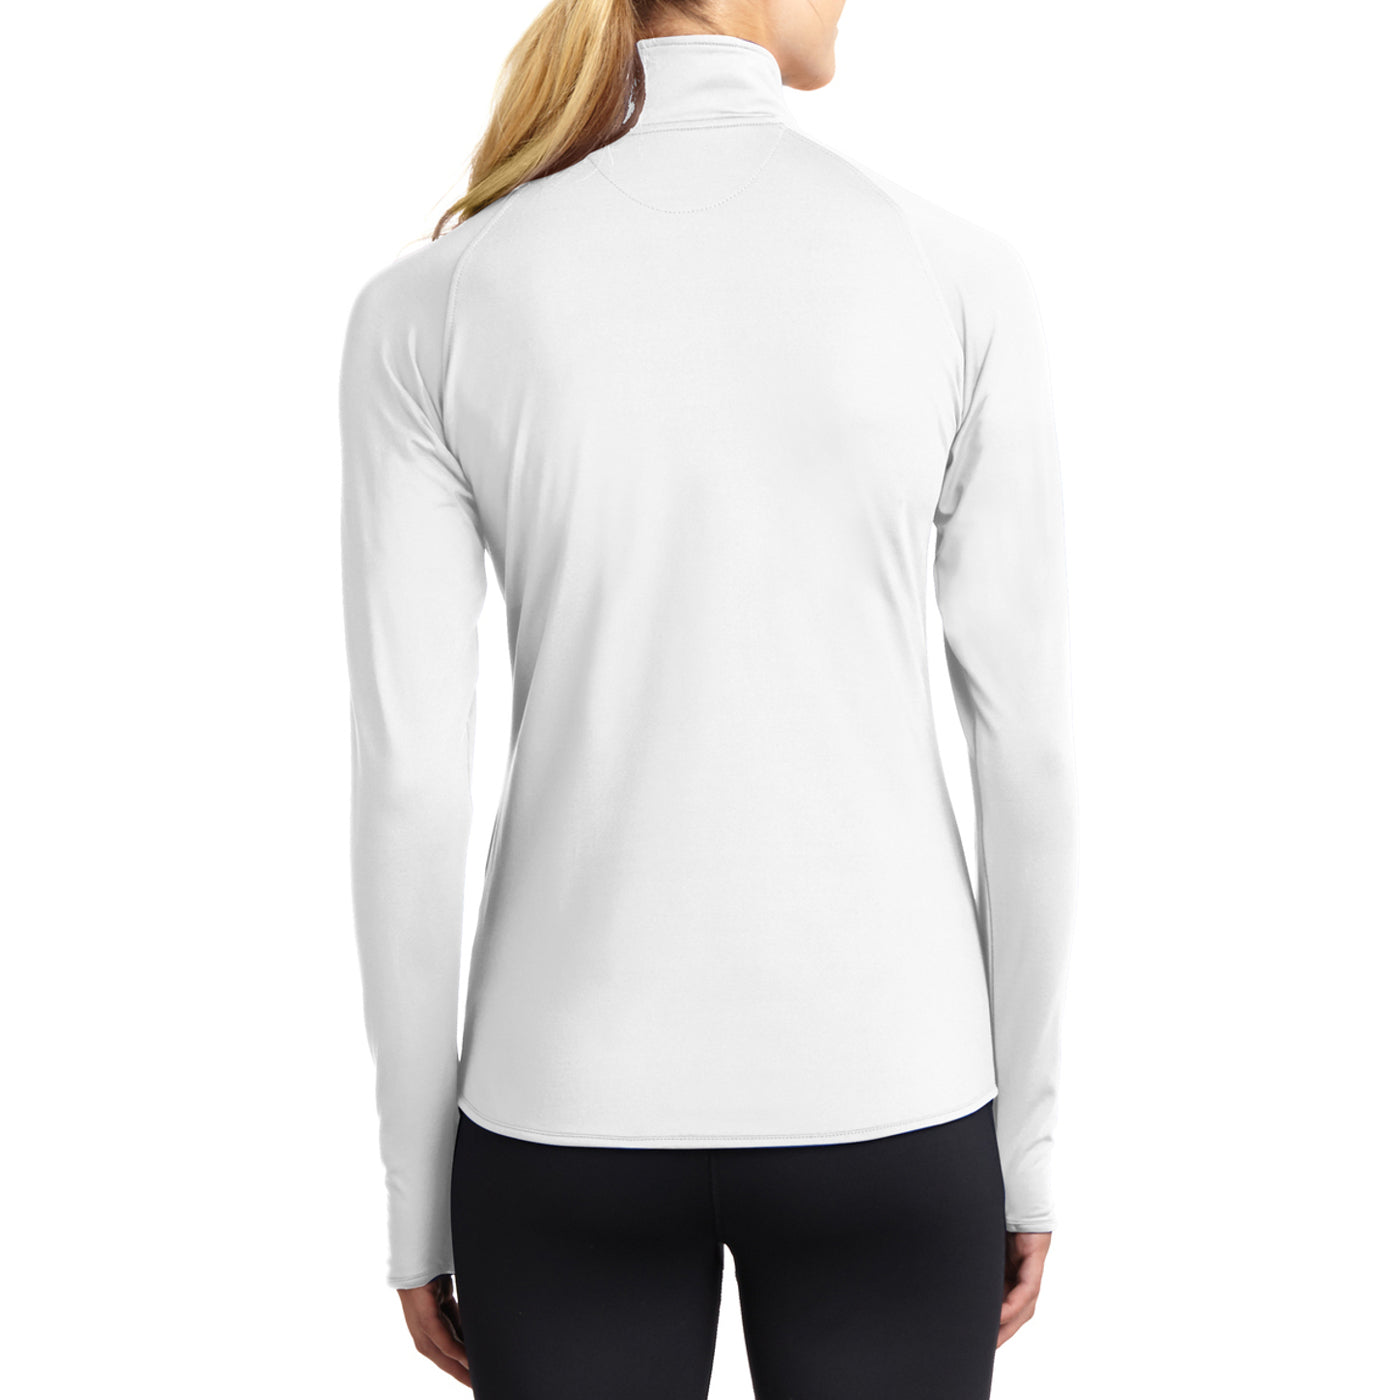 Women's Sport Wick Stretch 1/2 Zip Pullover - White - Back